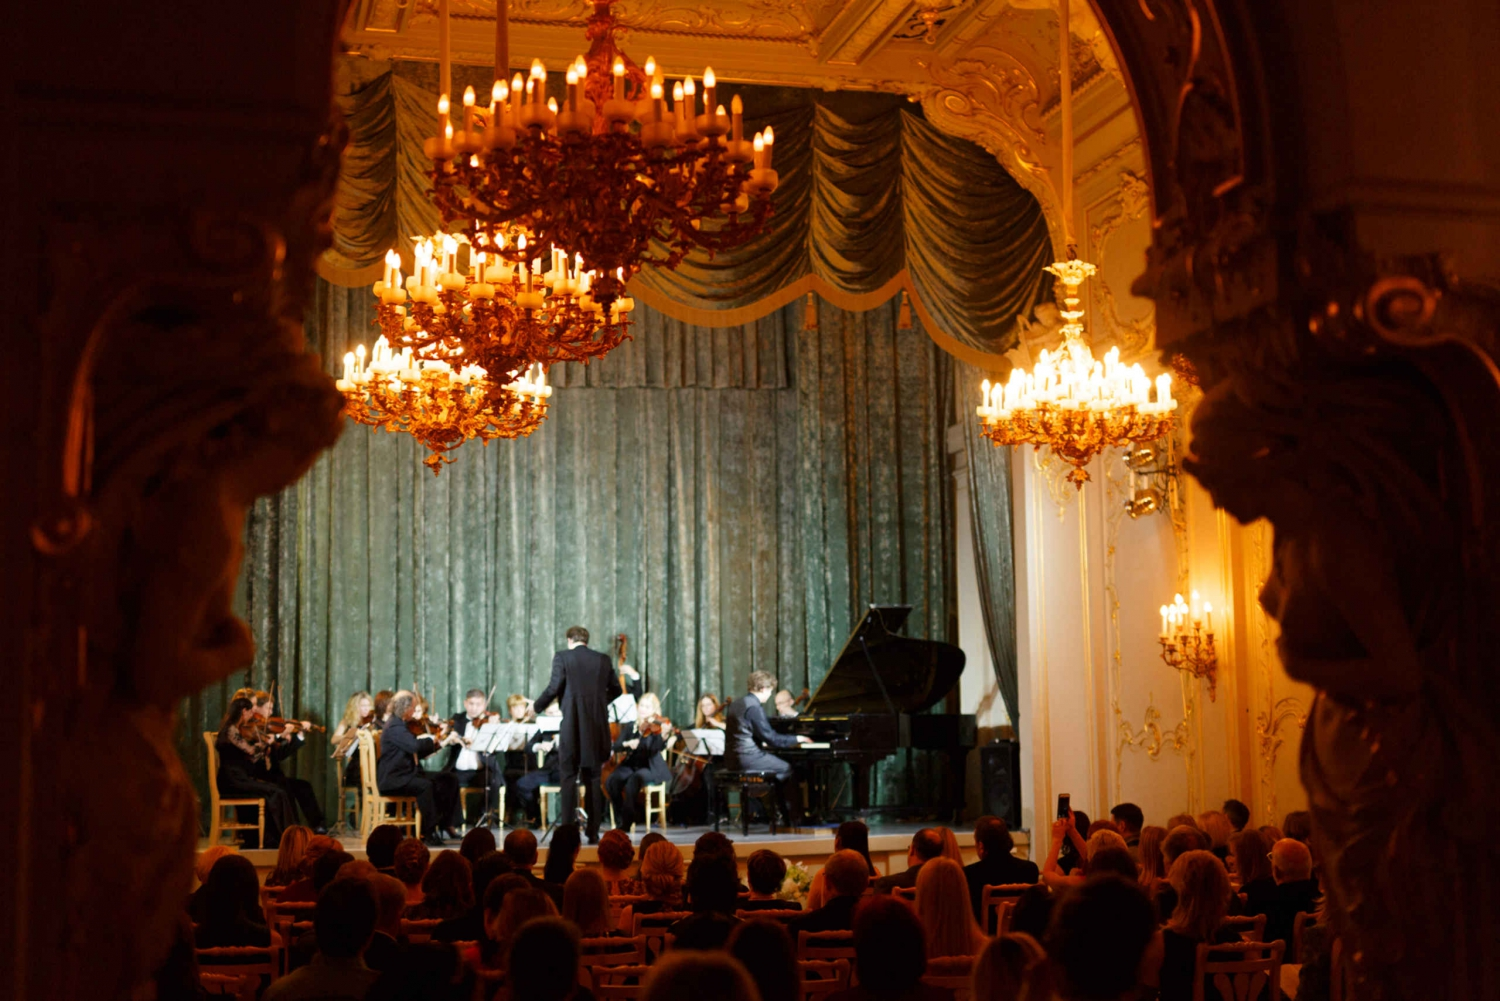 Live Classical Concert with Orchestra & Opera